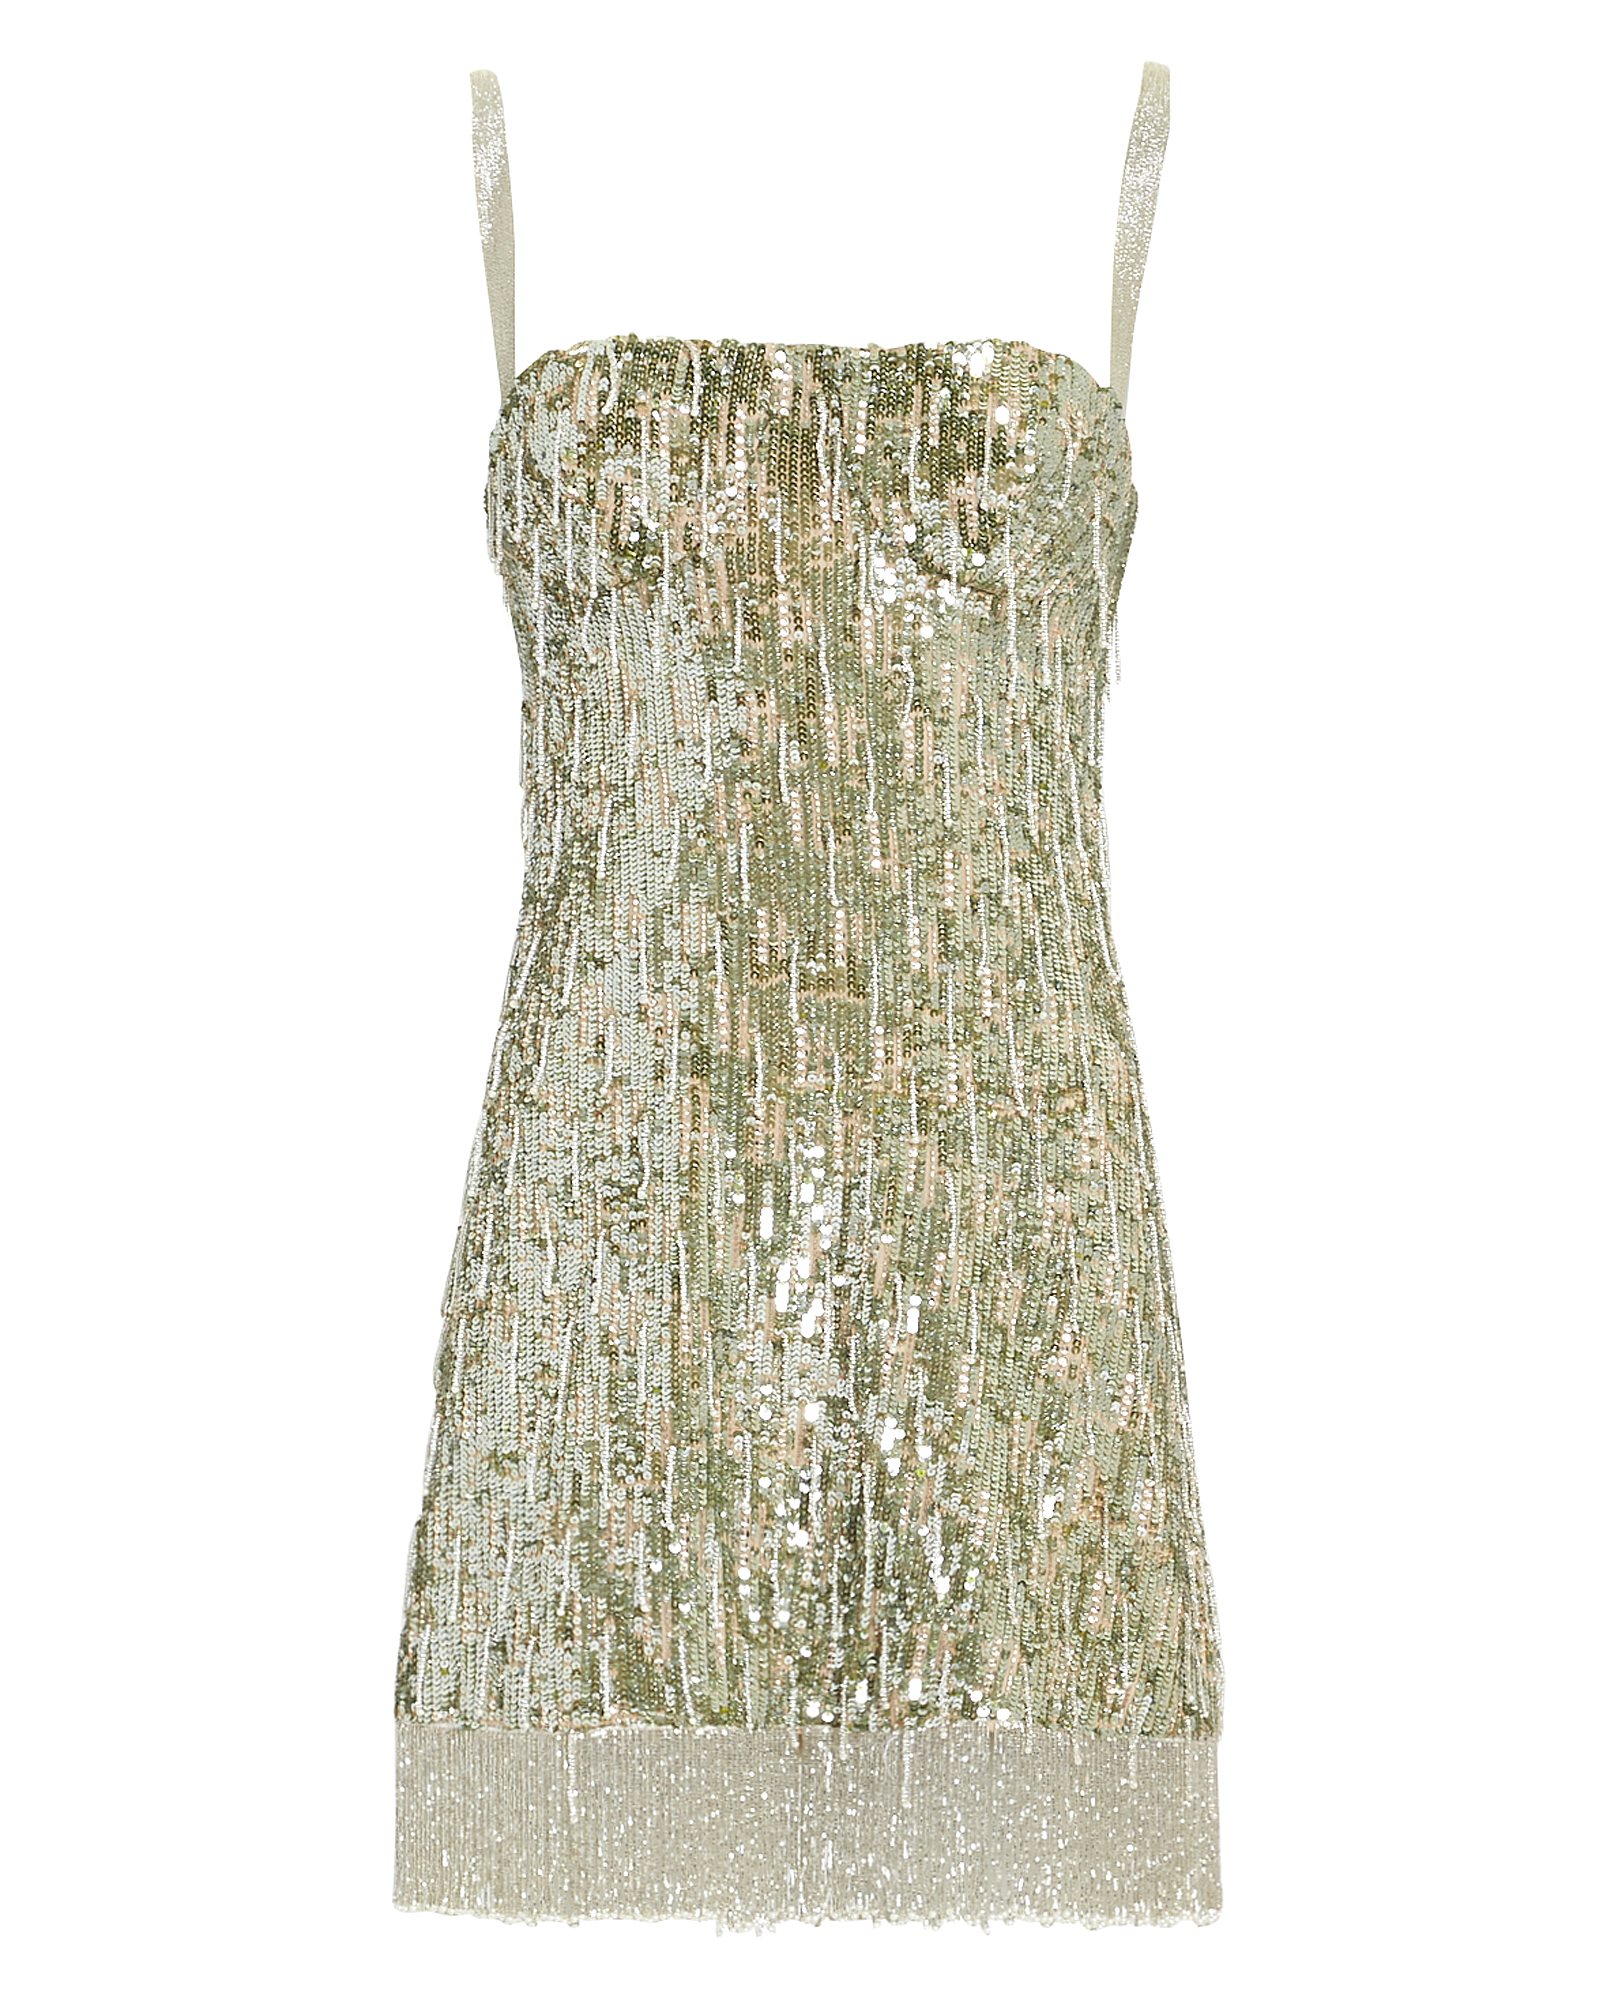 Alexis Izabell Sequined Fringe Cocktail Dress In Metallic